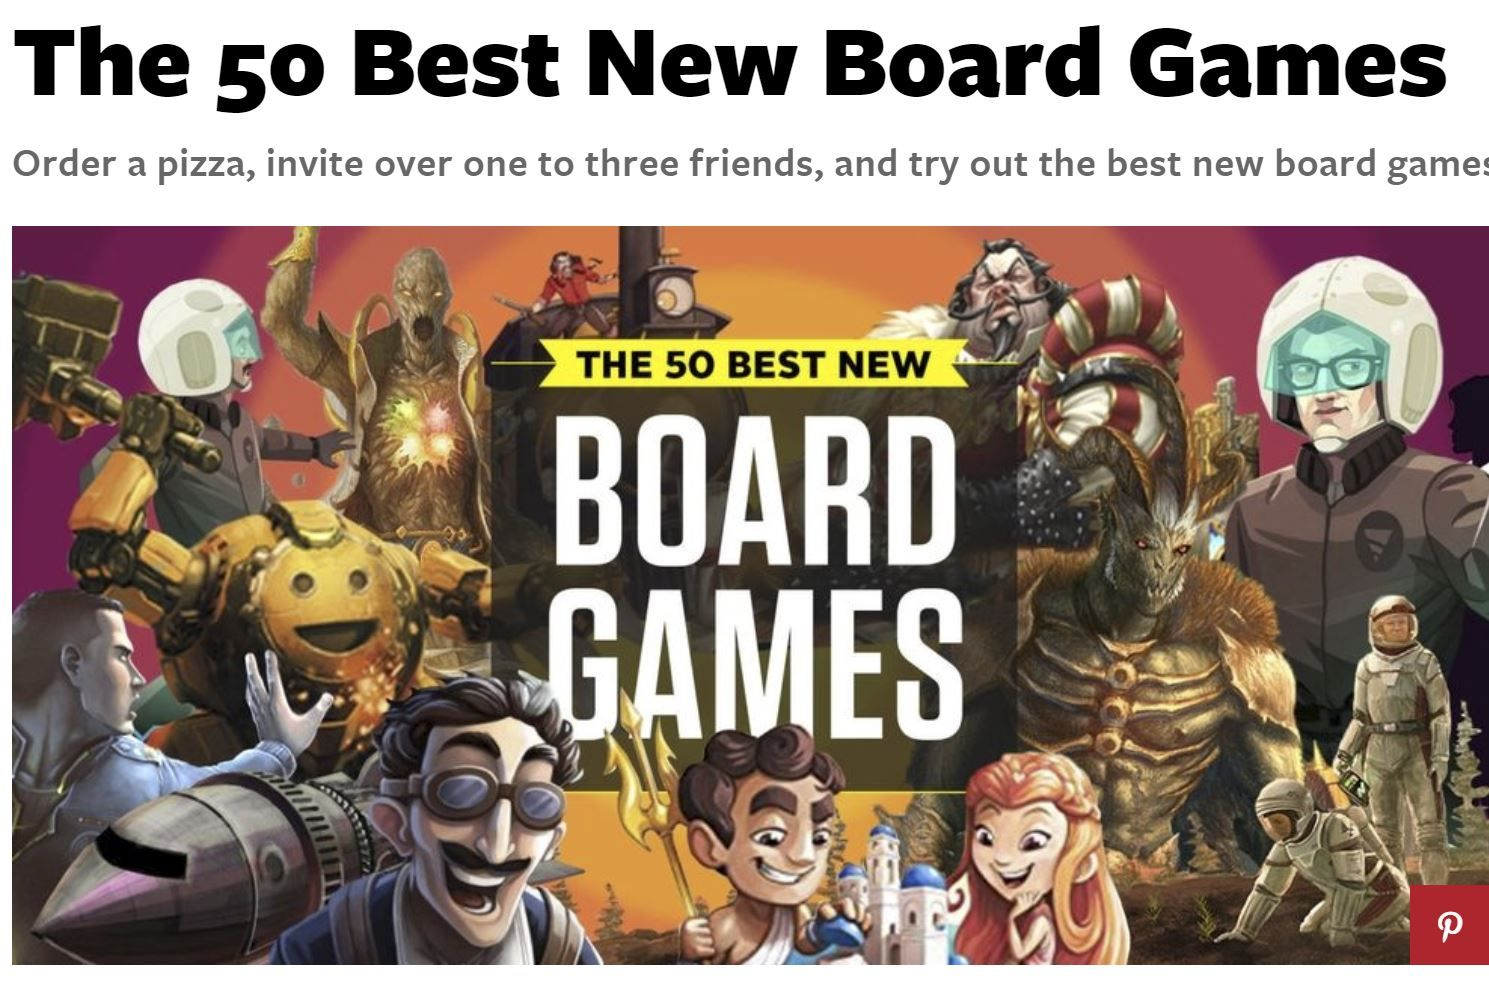 Popular Mechanics releases their top 50 Board Games of